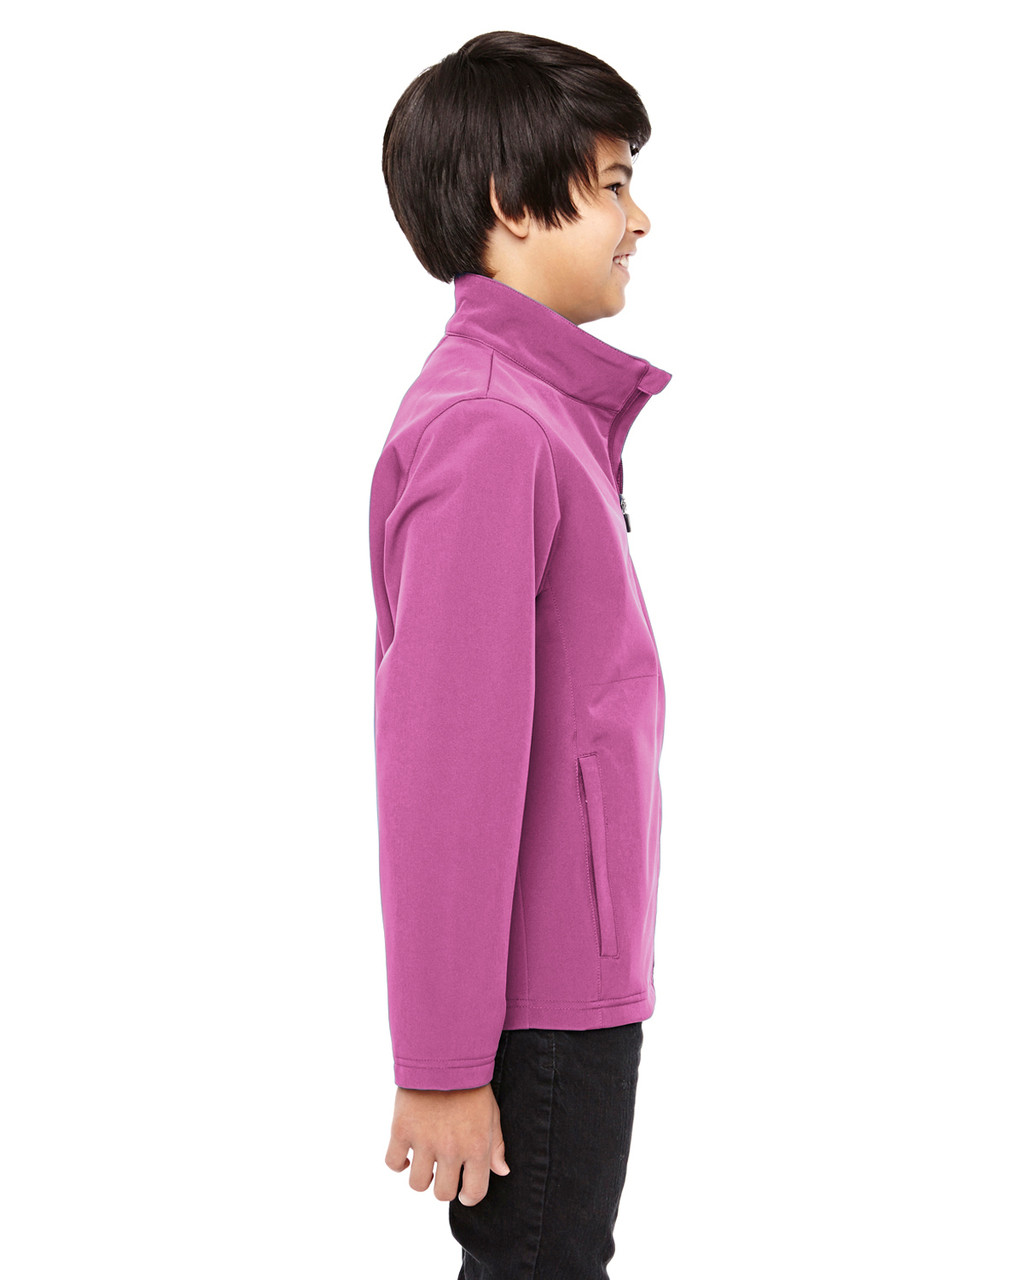 Sport Charity Pink - Side, TT80Y Team 365 Youth Leader Soft Shell Jacket | BlankClothing.ca